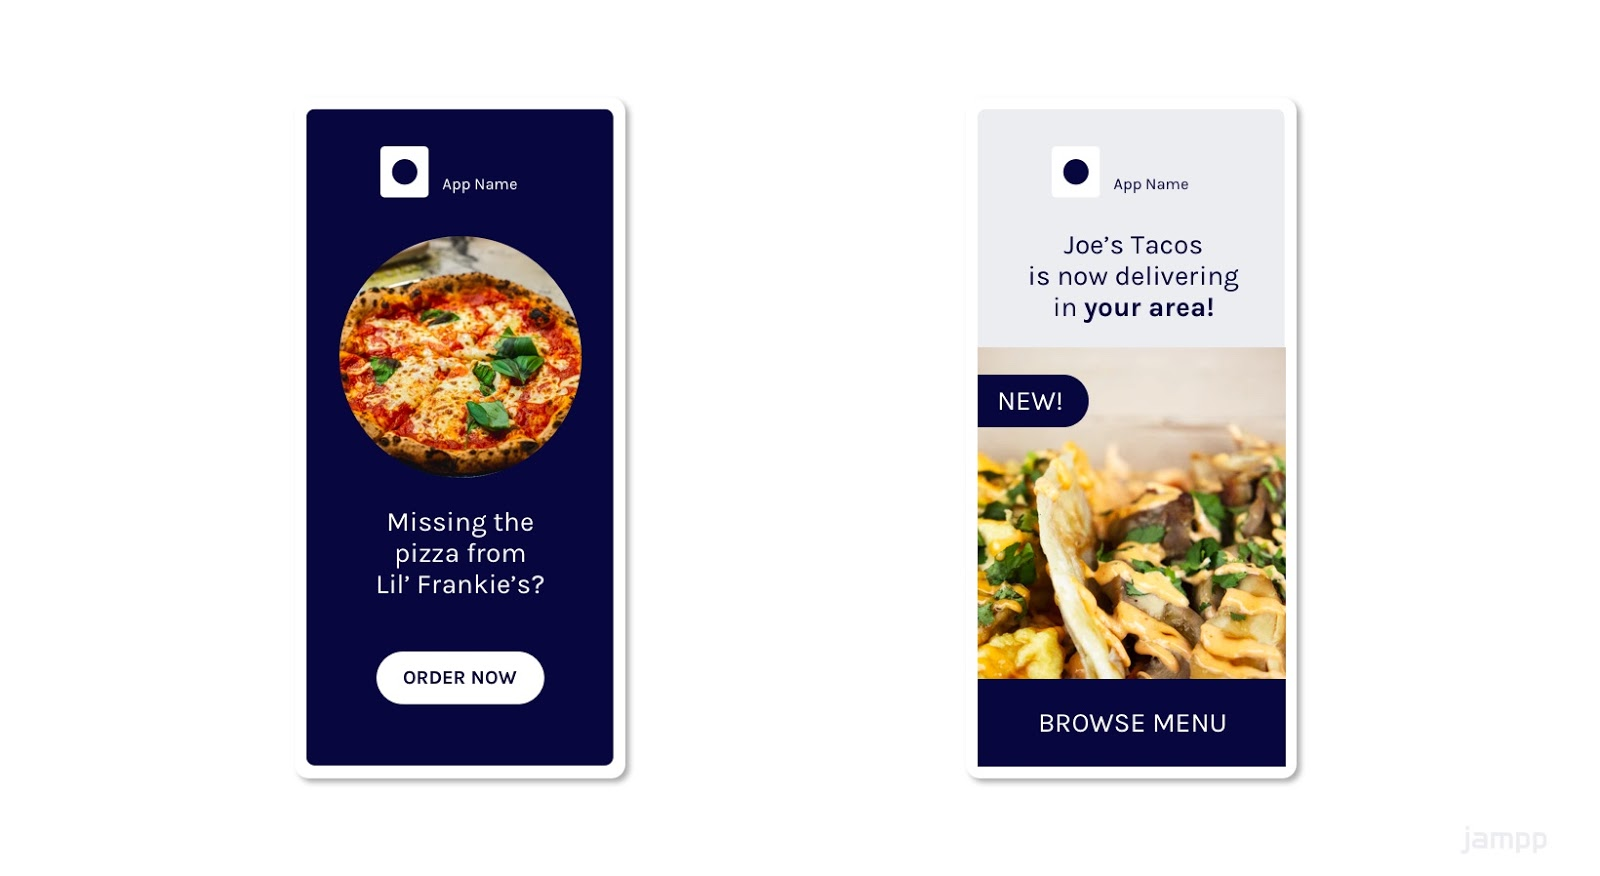 Example of geolocated ads for food delivery apps